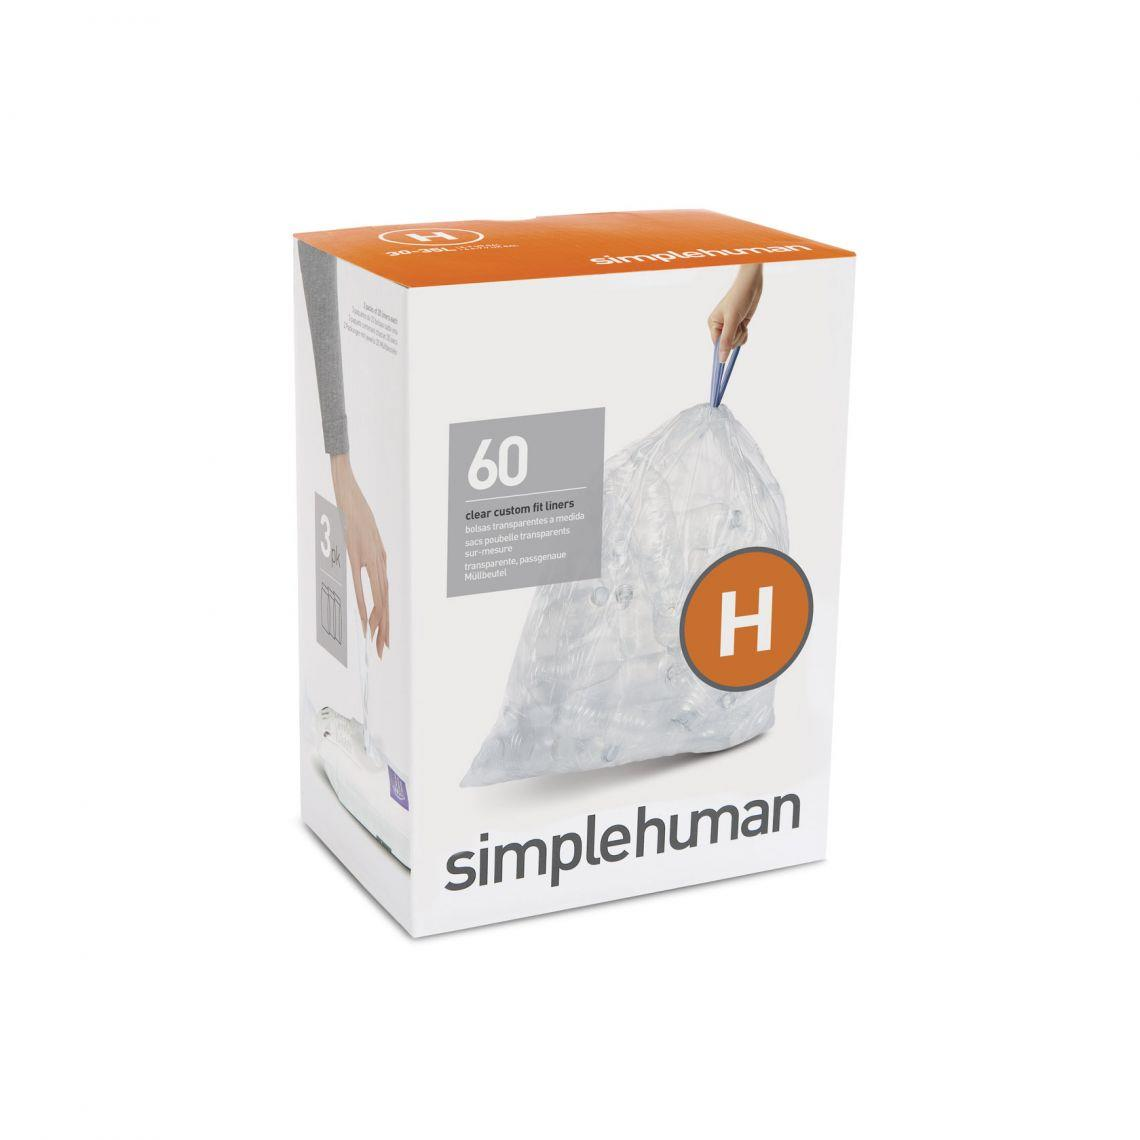 Simplehuman Code H Custom Fit Recycling Liner, 30-35L